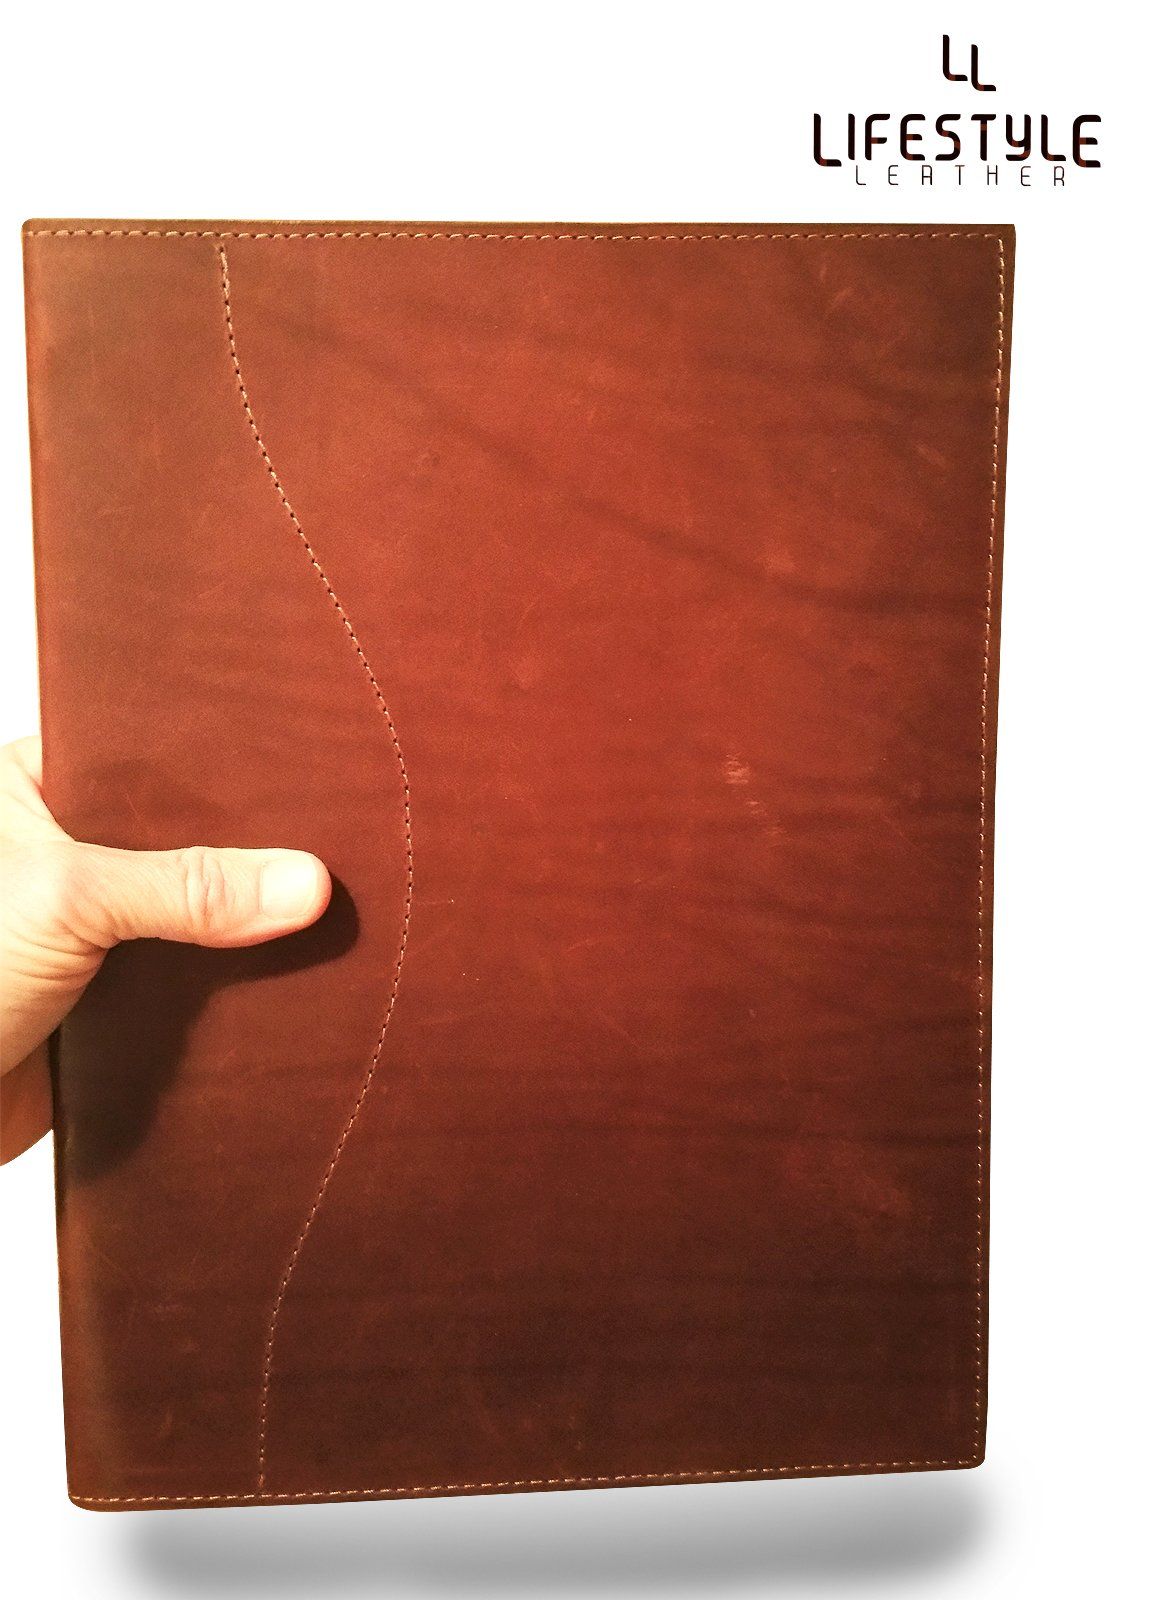 Personalized Genuine Leather Letter Padfolio/ Portfolio - Perfect for Executives and Business Professionals, Refillable Notepad, Side Hinge (Burgundy)